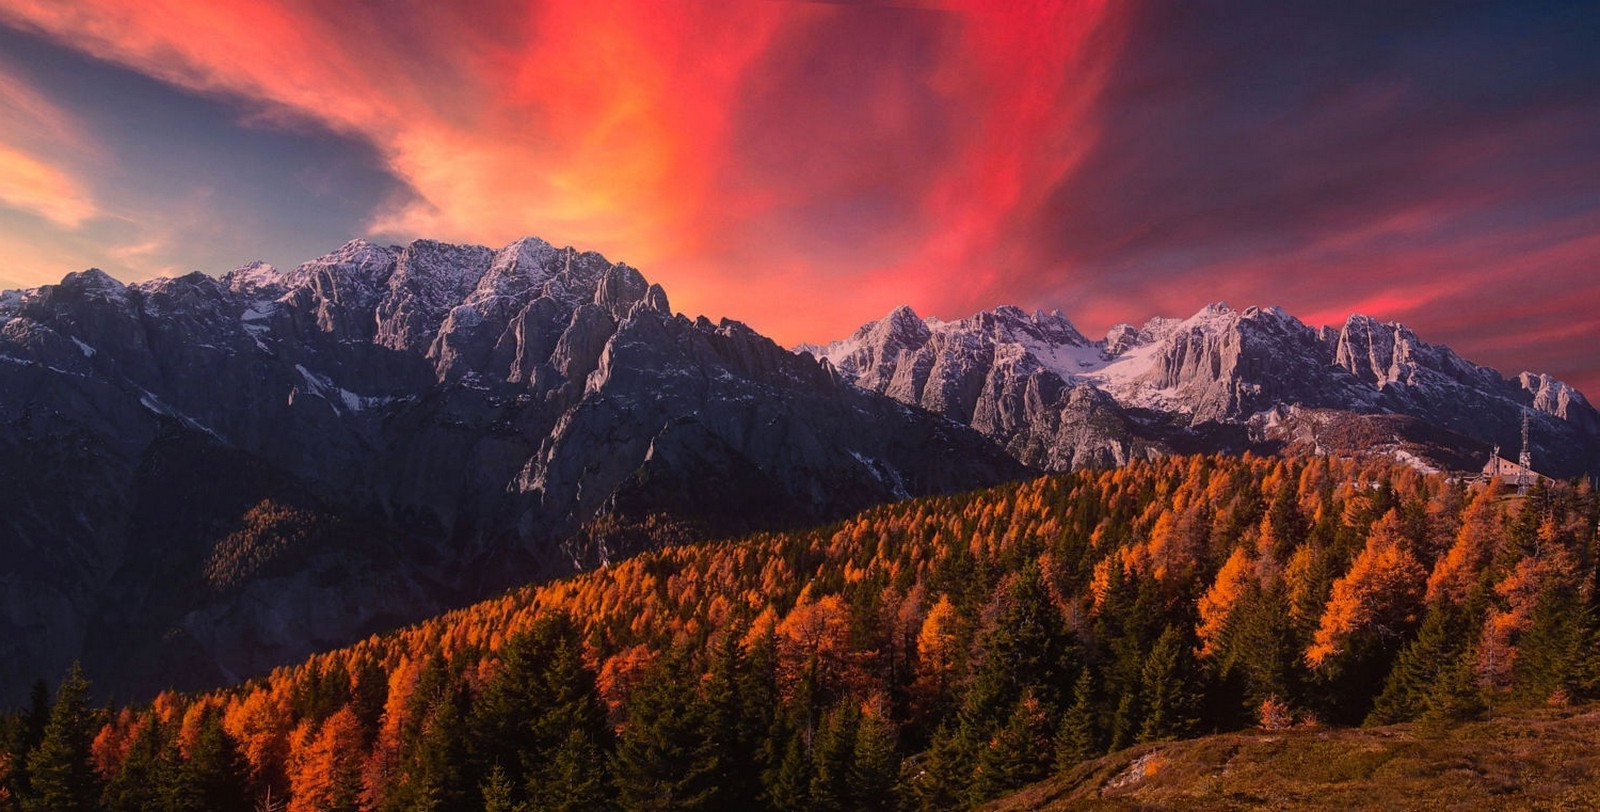 Fall Wallpaper 1600x900 Nature Landscape Alps Mountains Snowy Peak Sunset